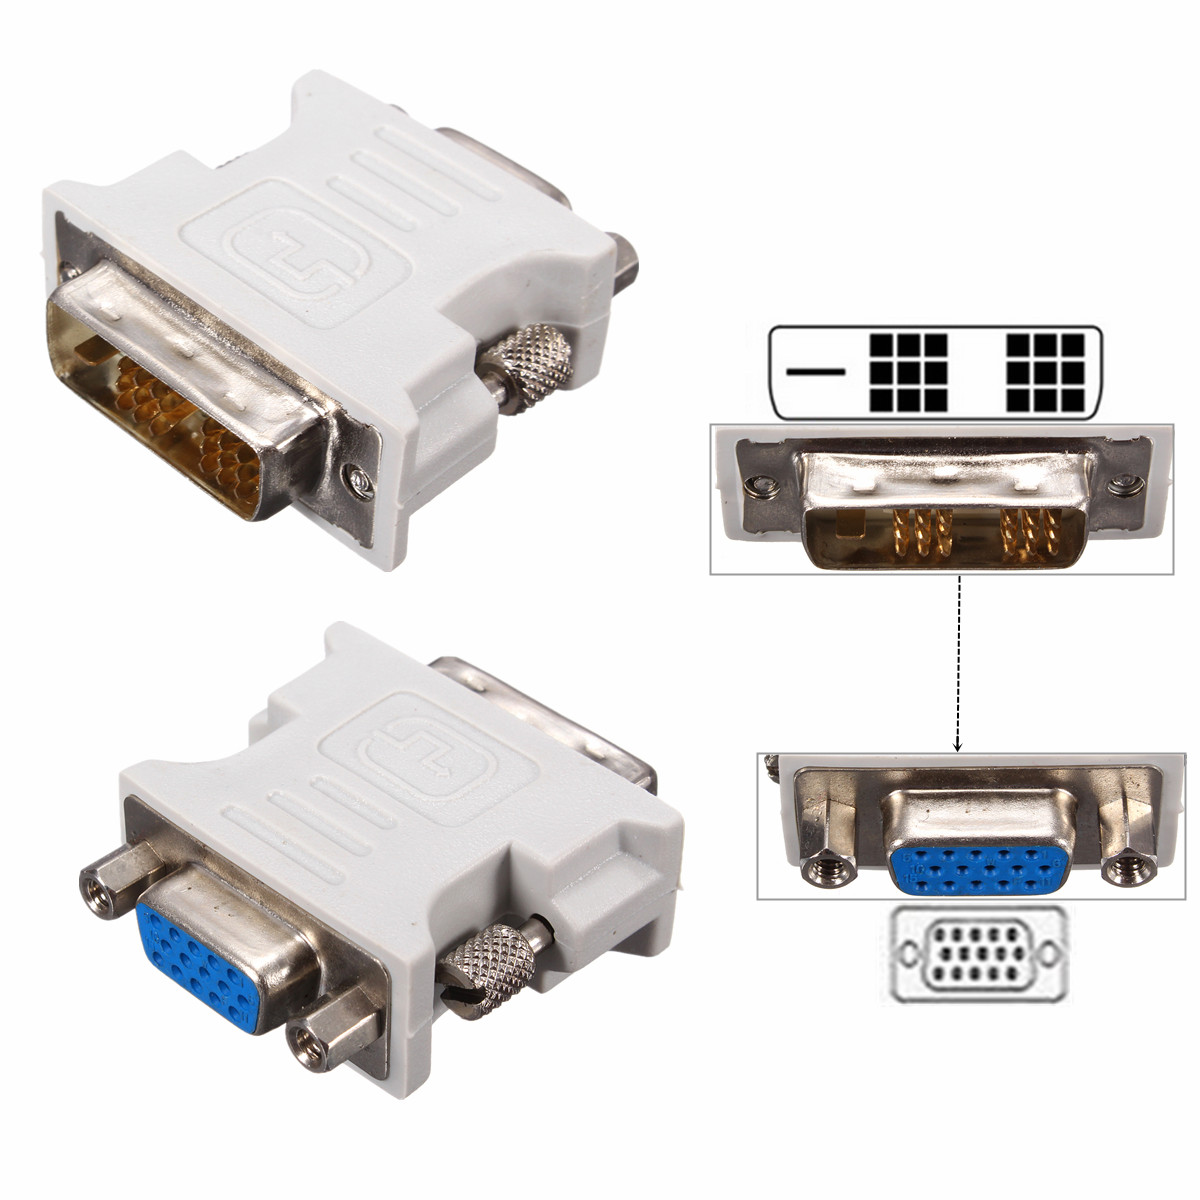 Dvi D 18 1 Dual Link Male To Vga 15 Pin Female Adapter